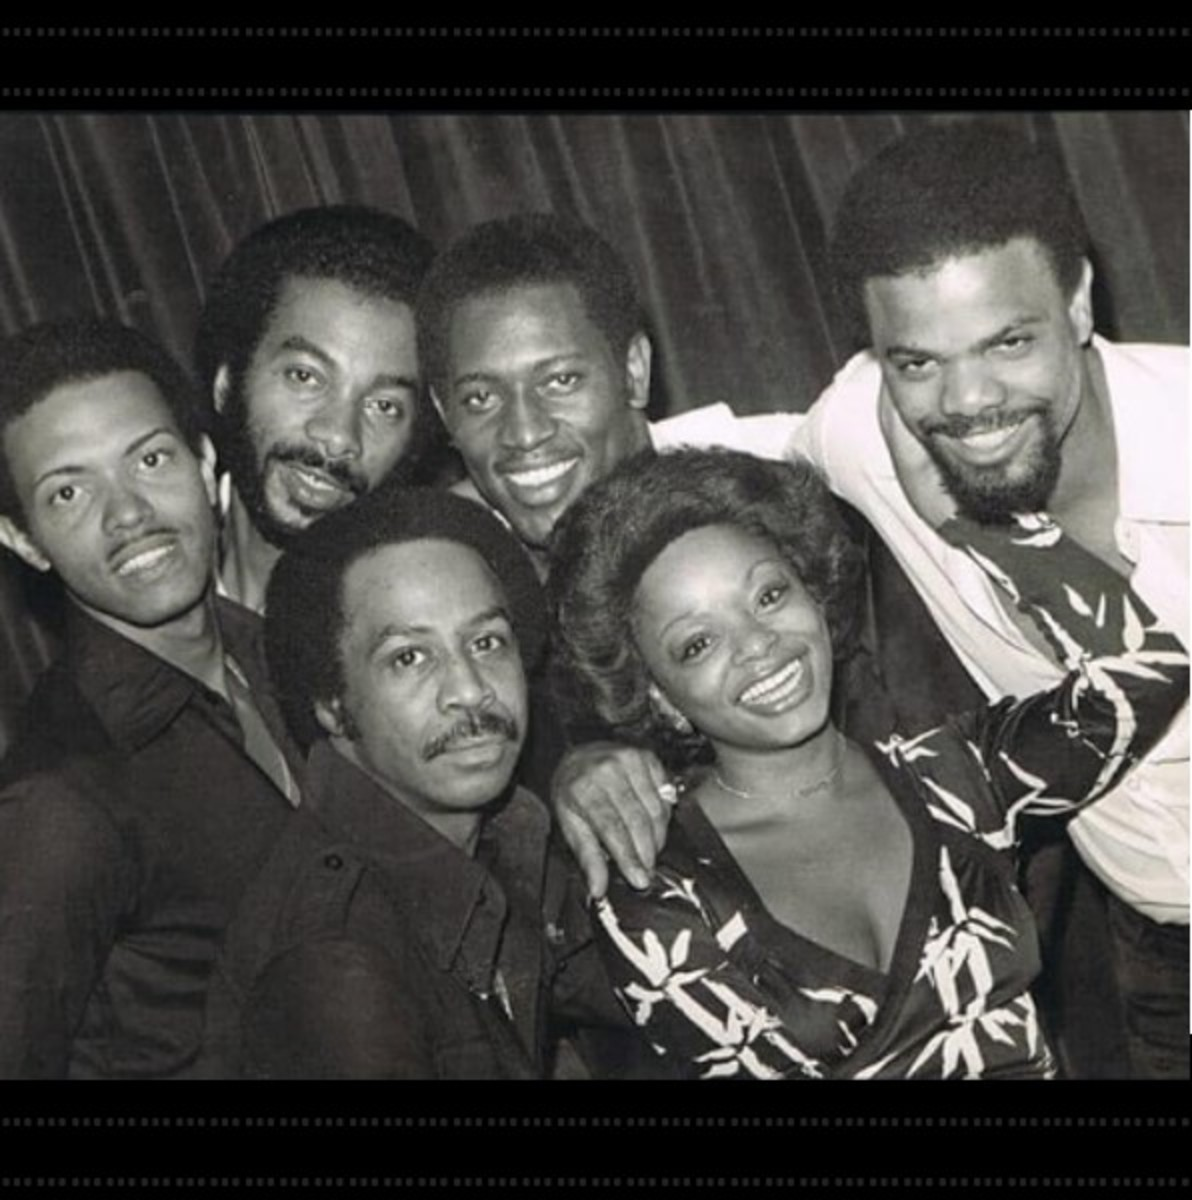 Sharon Paige with Harold Melvin & The Blue Notes, photo courtesy of Gamble Huff Entertainment